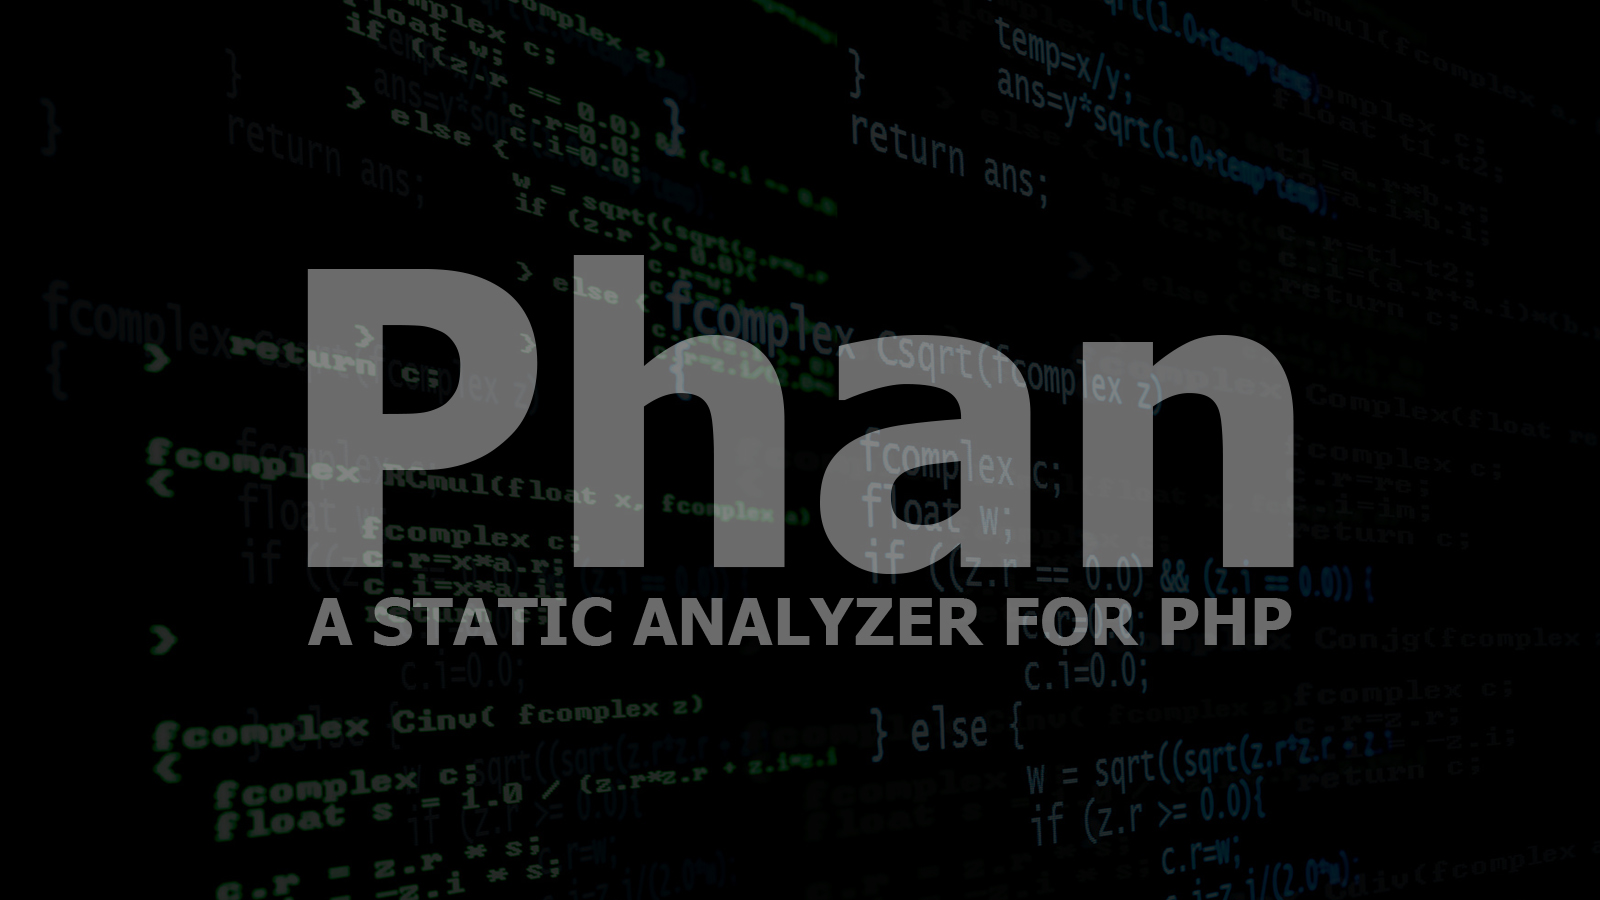 Phan - A Static Analyzer for PHP